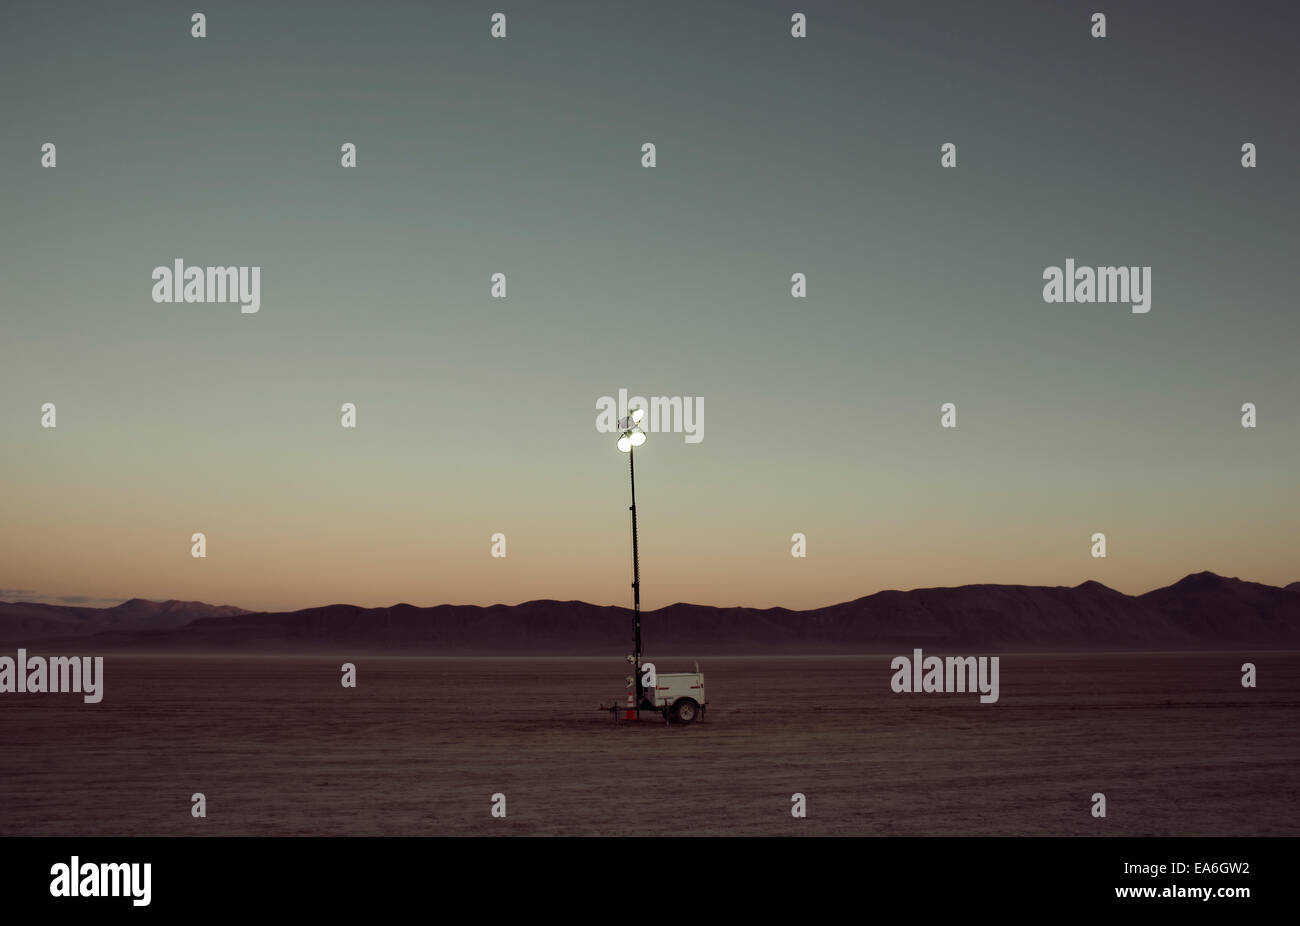 Lamp in middle of desert, Nevada, America, USA - Stock Image